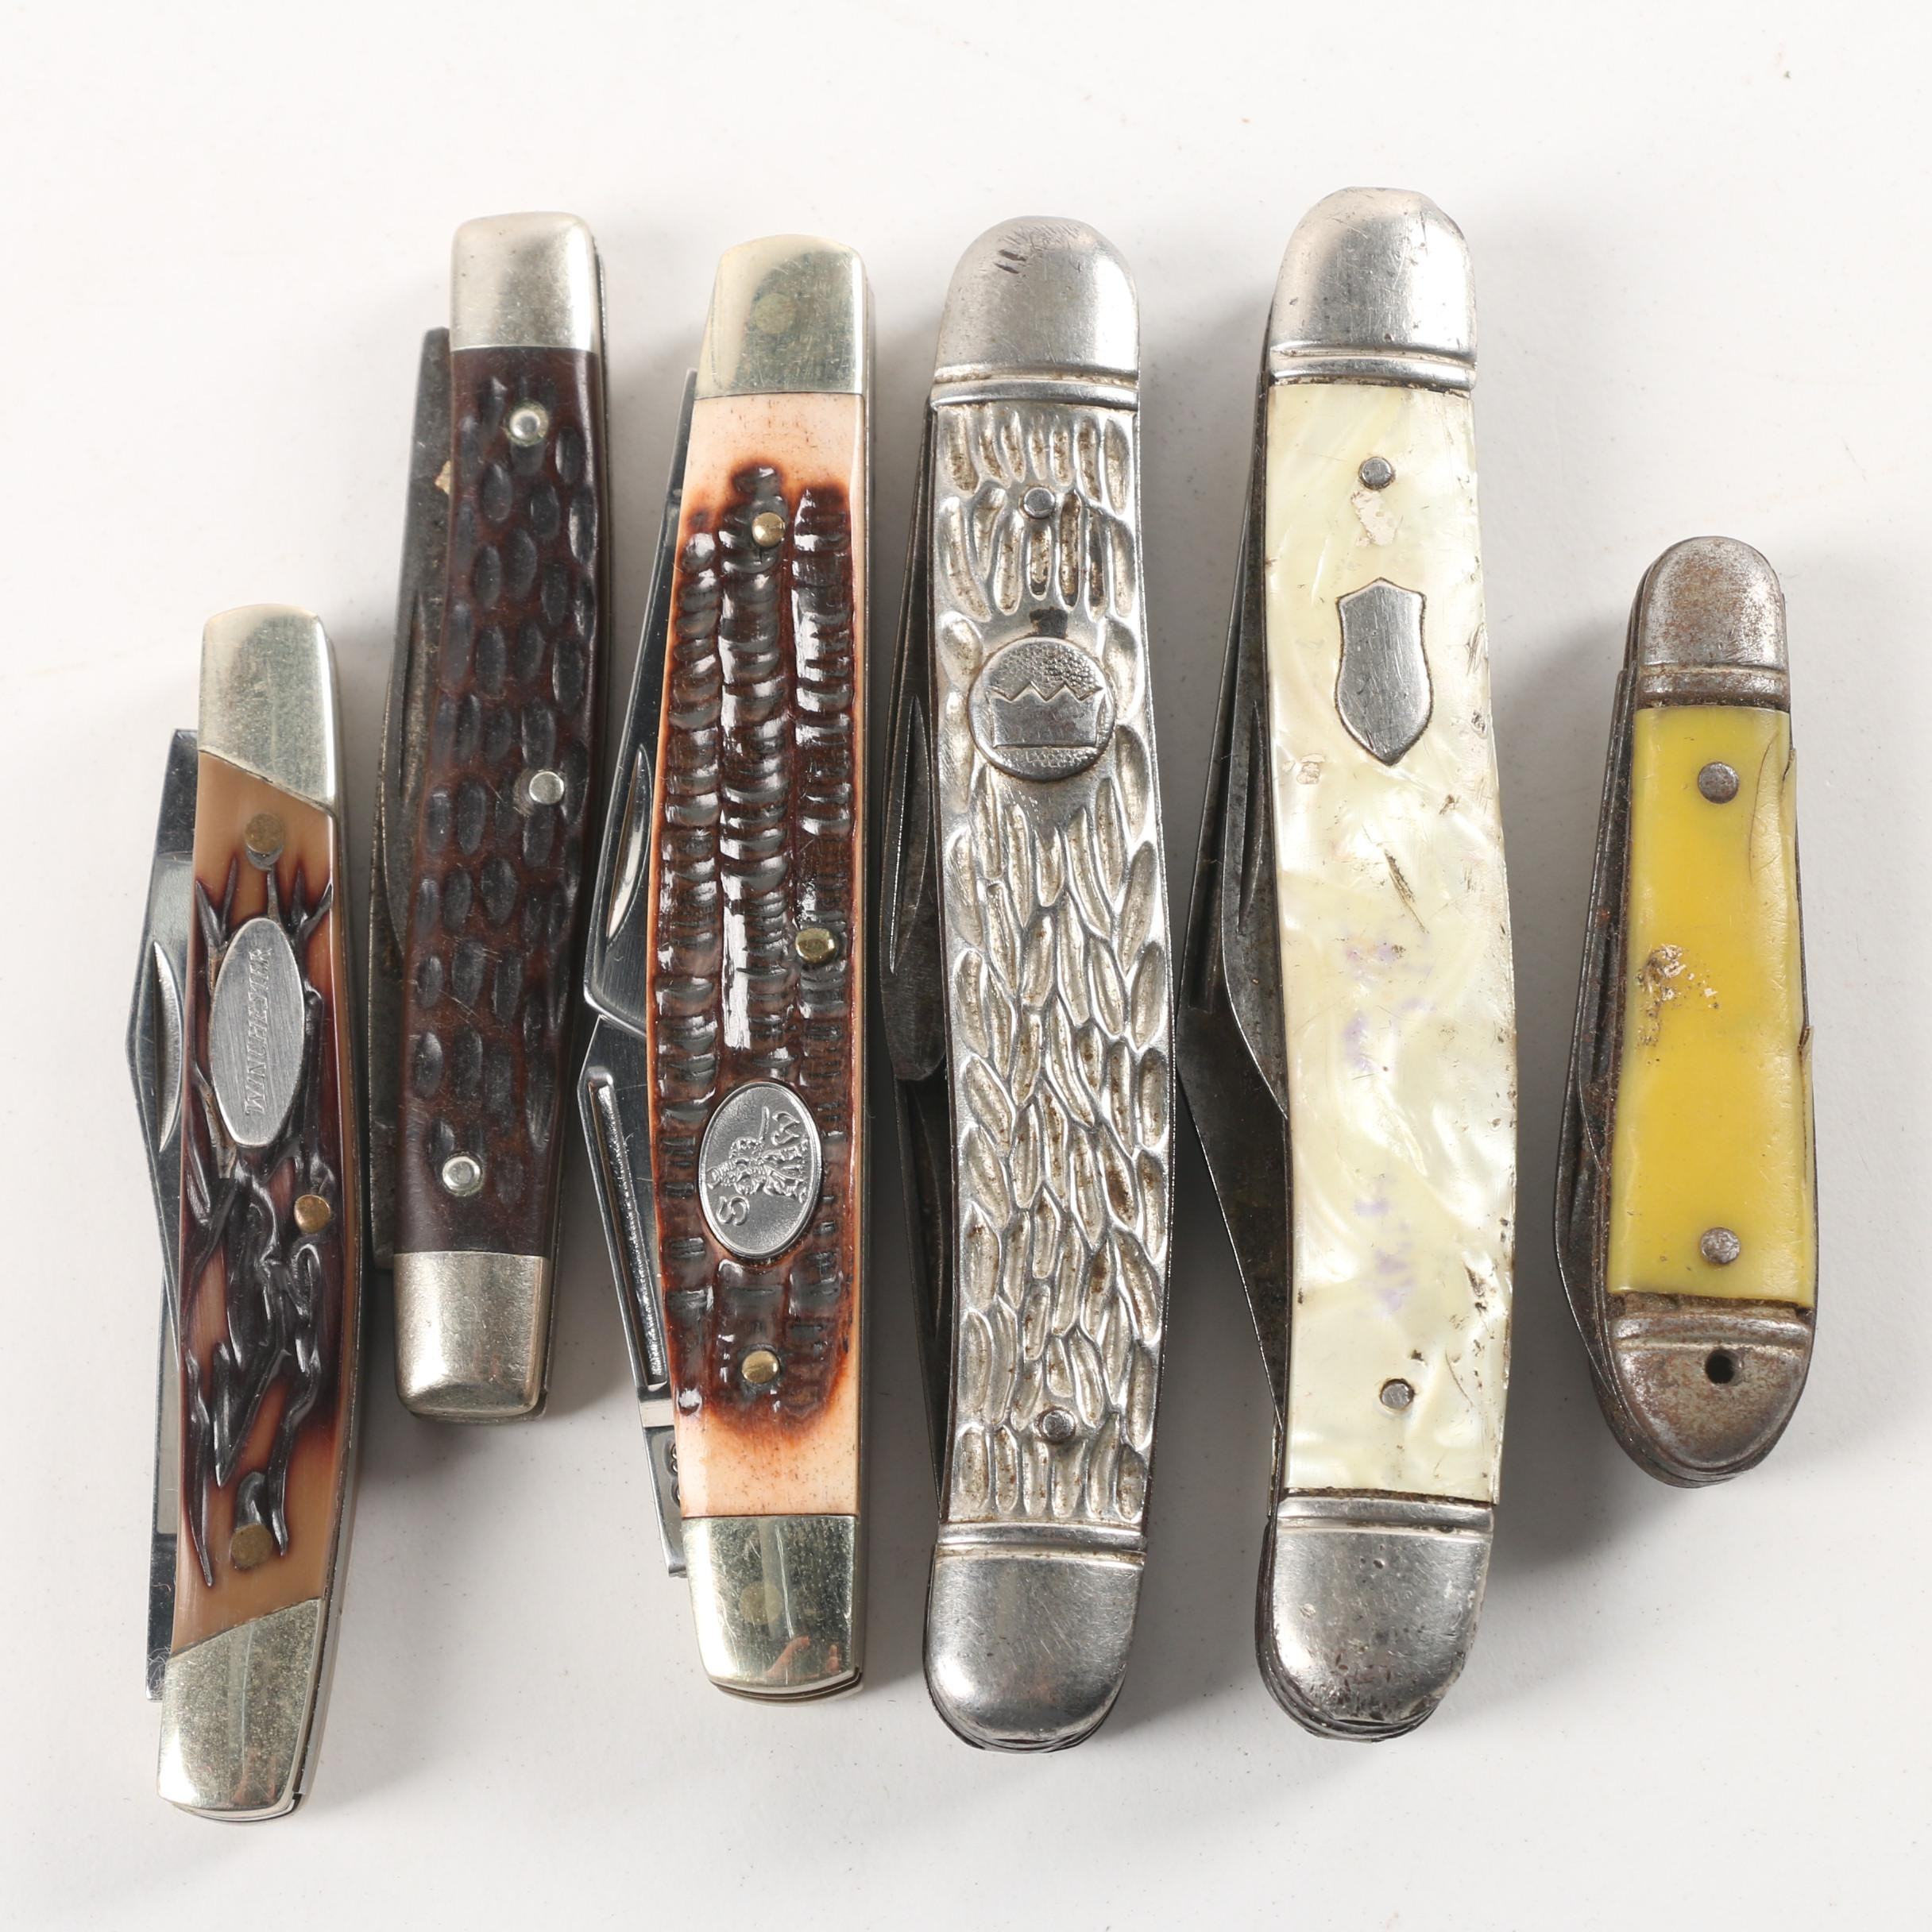 Winchester, Steel Warrior and Other Pocket Knives